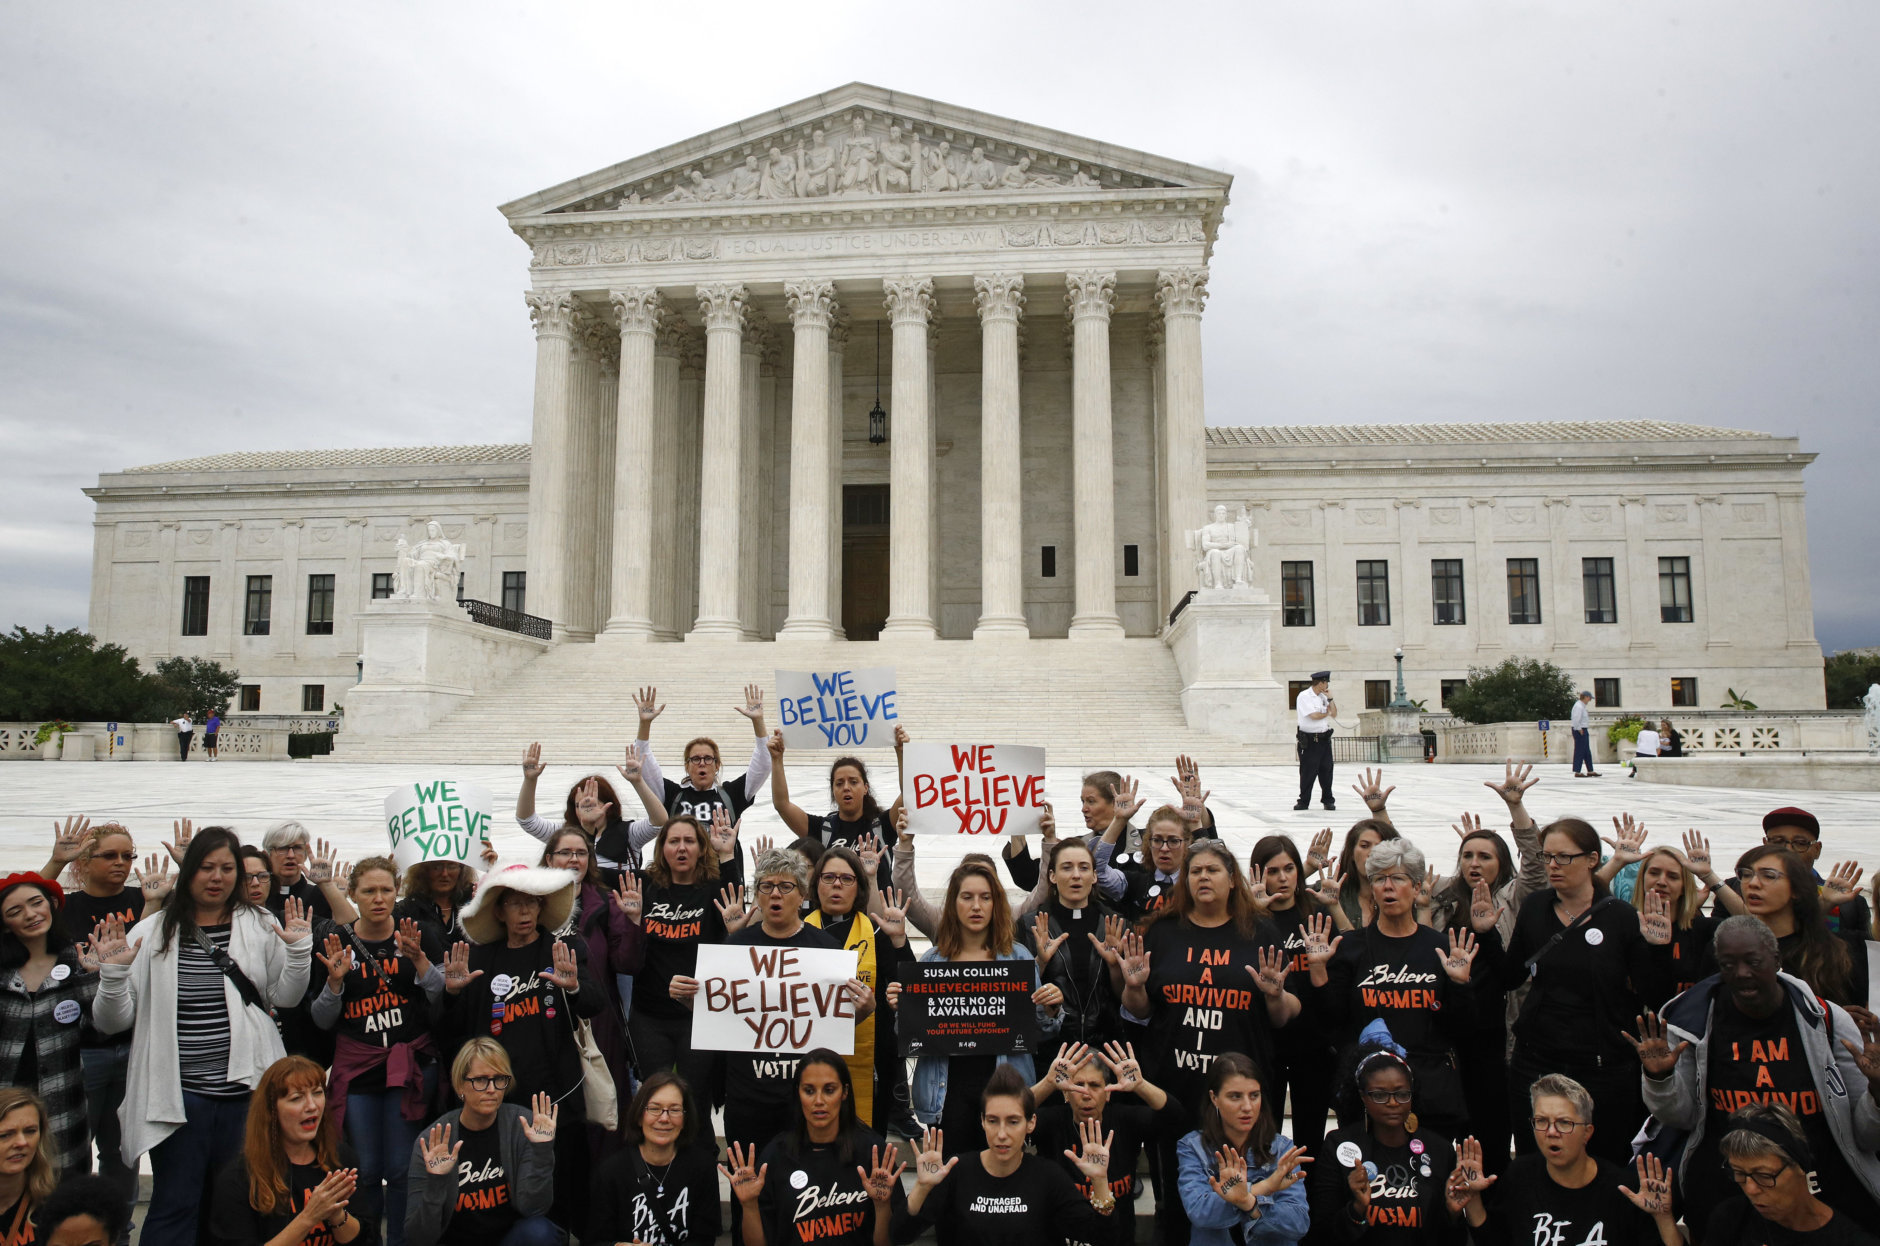 Protesters gather in front of the Supreme Court on Capitol Hill in Washington, Thursday, Sept. 27, 2018. The Senate Judiciary Committee is scheduled to hear Thursday from Supreme Court nominee Brett Kavanaugh and Christine Blasey Ford, the woman who says he sexually assaulted her. (AP Photo/Patrick Semansky)